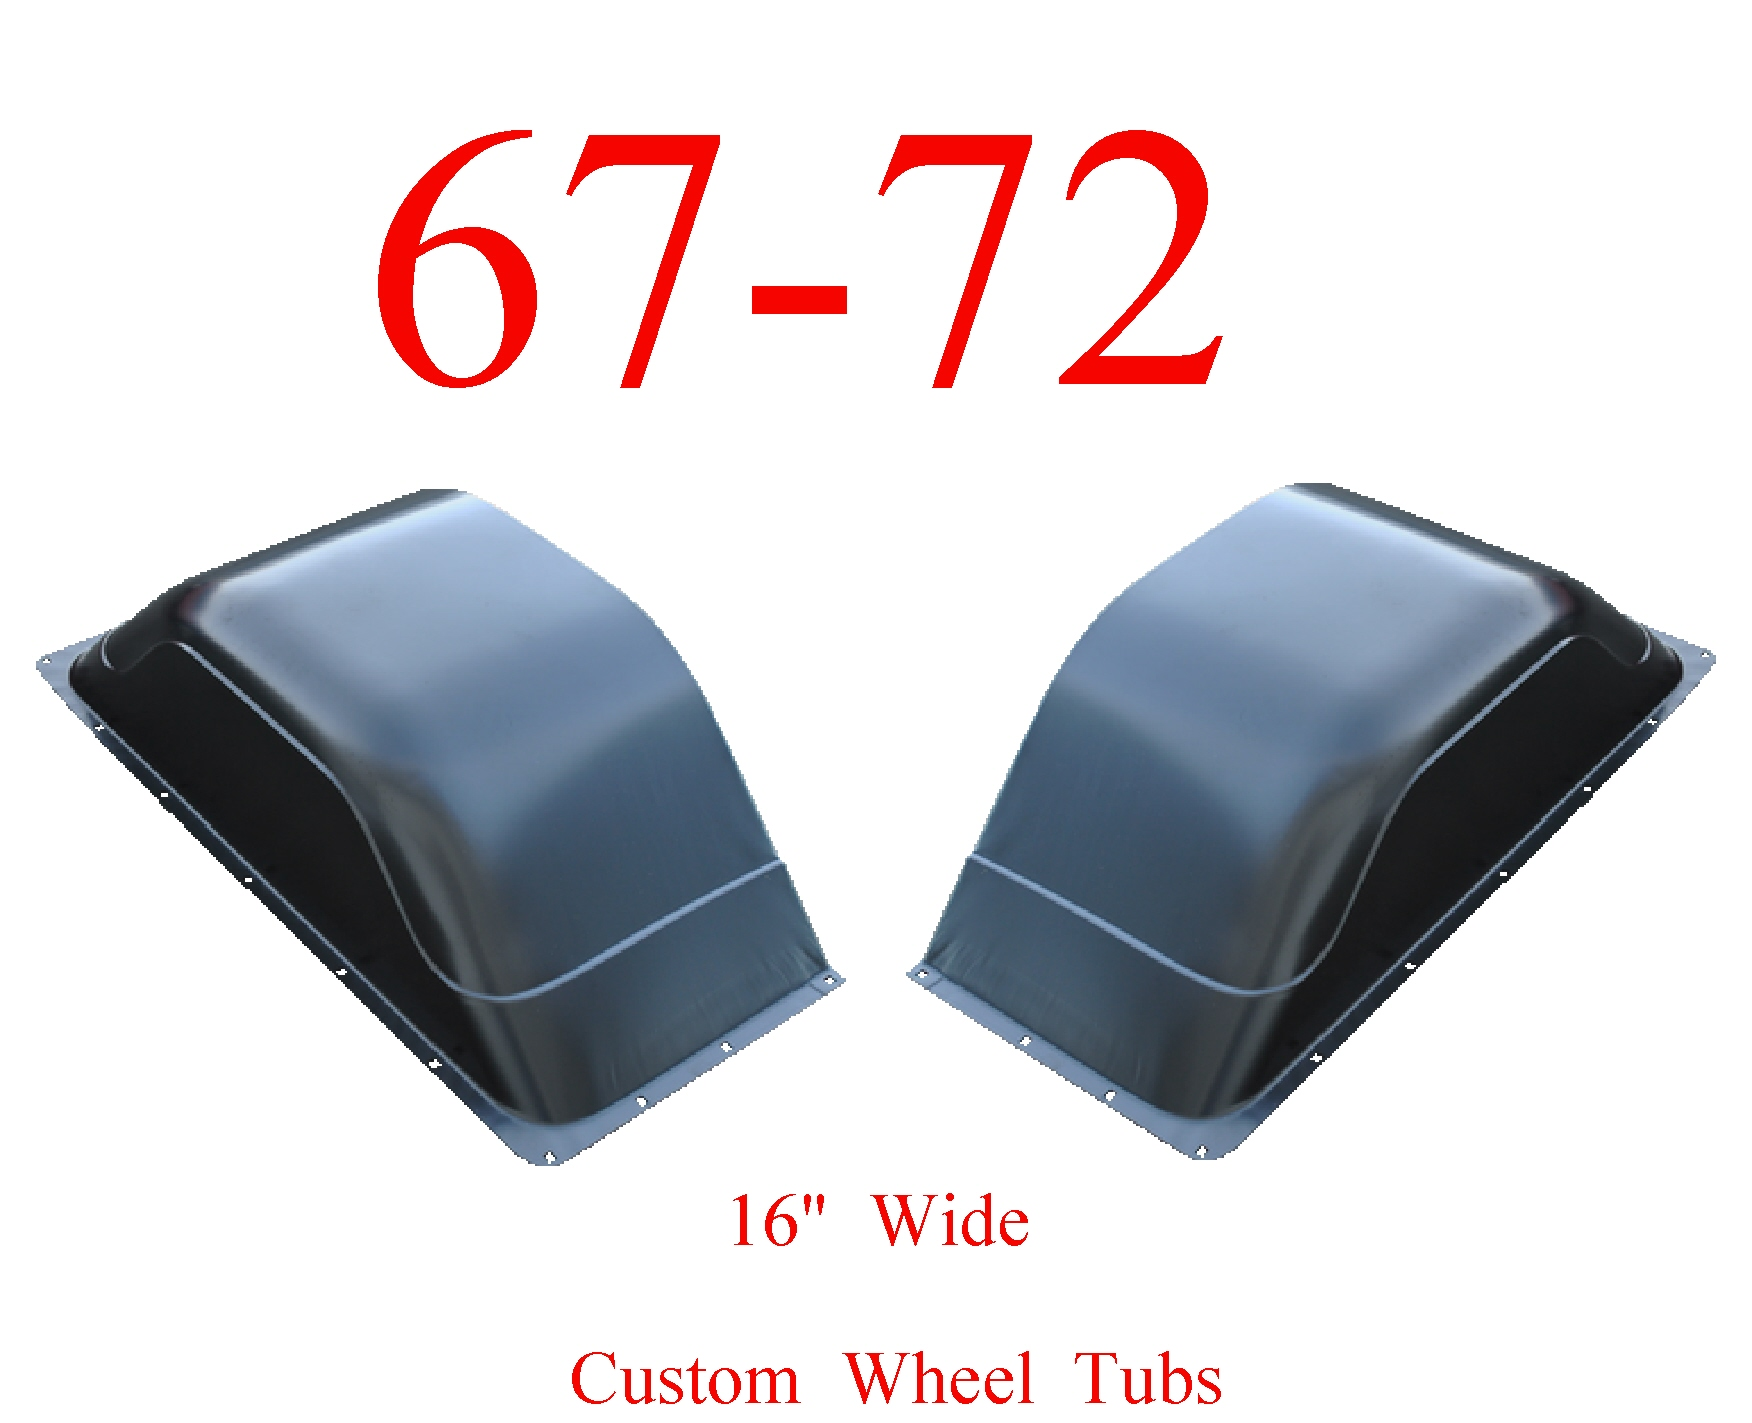 67-72 Chevy Custom Wide Wheel Tubs 16\